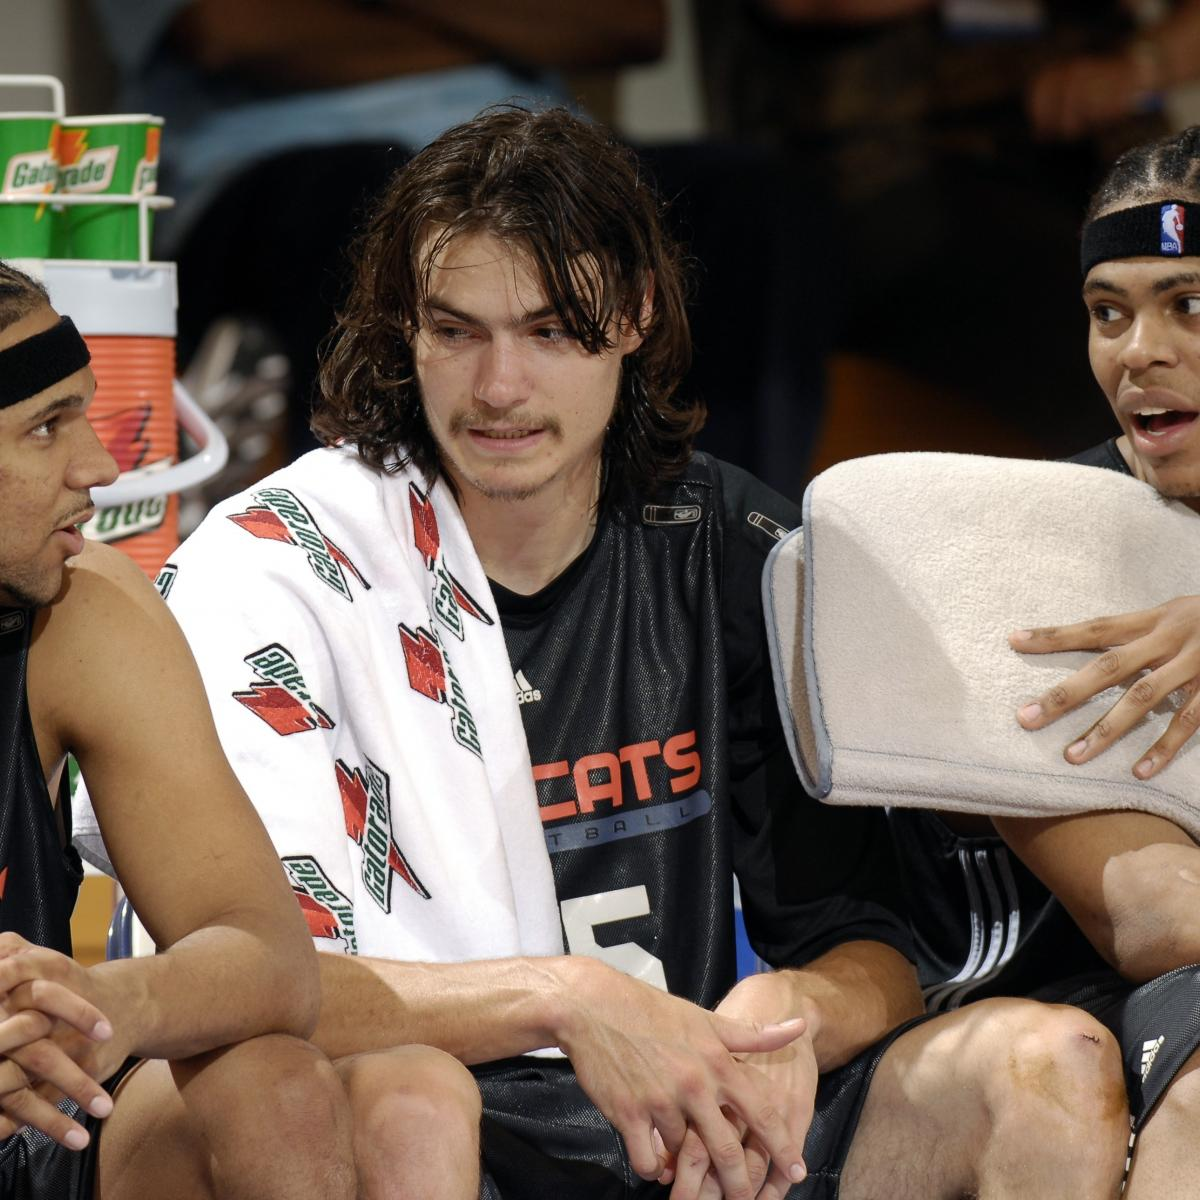 ebe67d74ada Wizards' Jared Dudley Says Adam Morrison Never Took Showers | Bleacher  Report | Latest News, Videos and Highlights